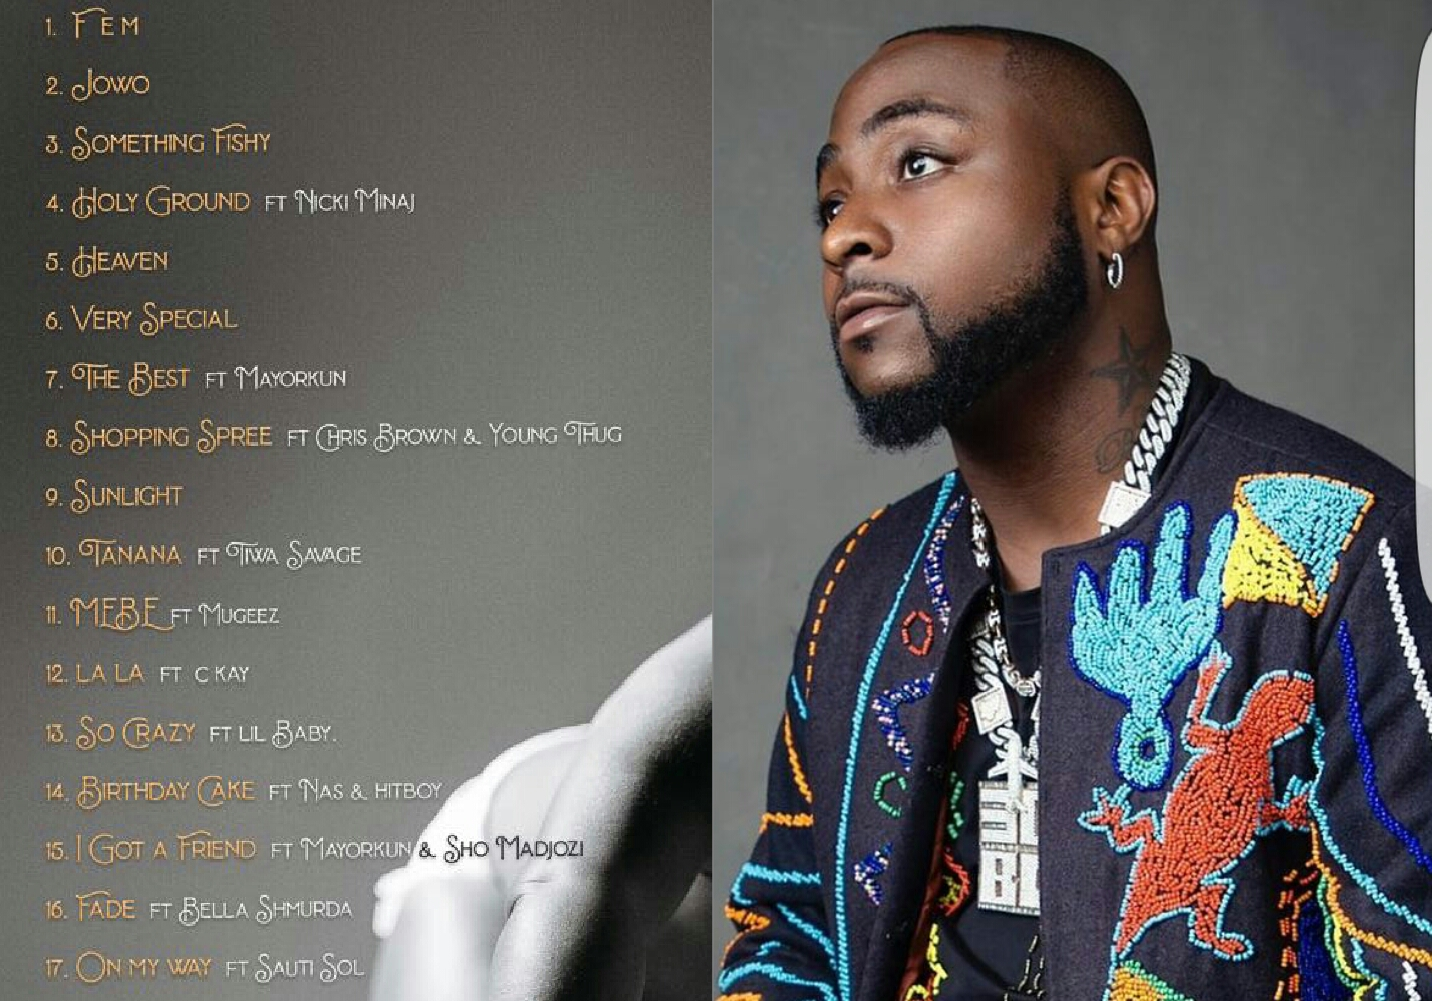 davido-unveils-tracklist-and-album-cover-for-his-new-project,-'a-better-time'